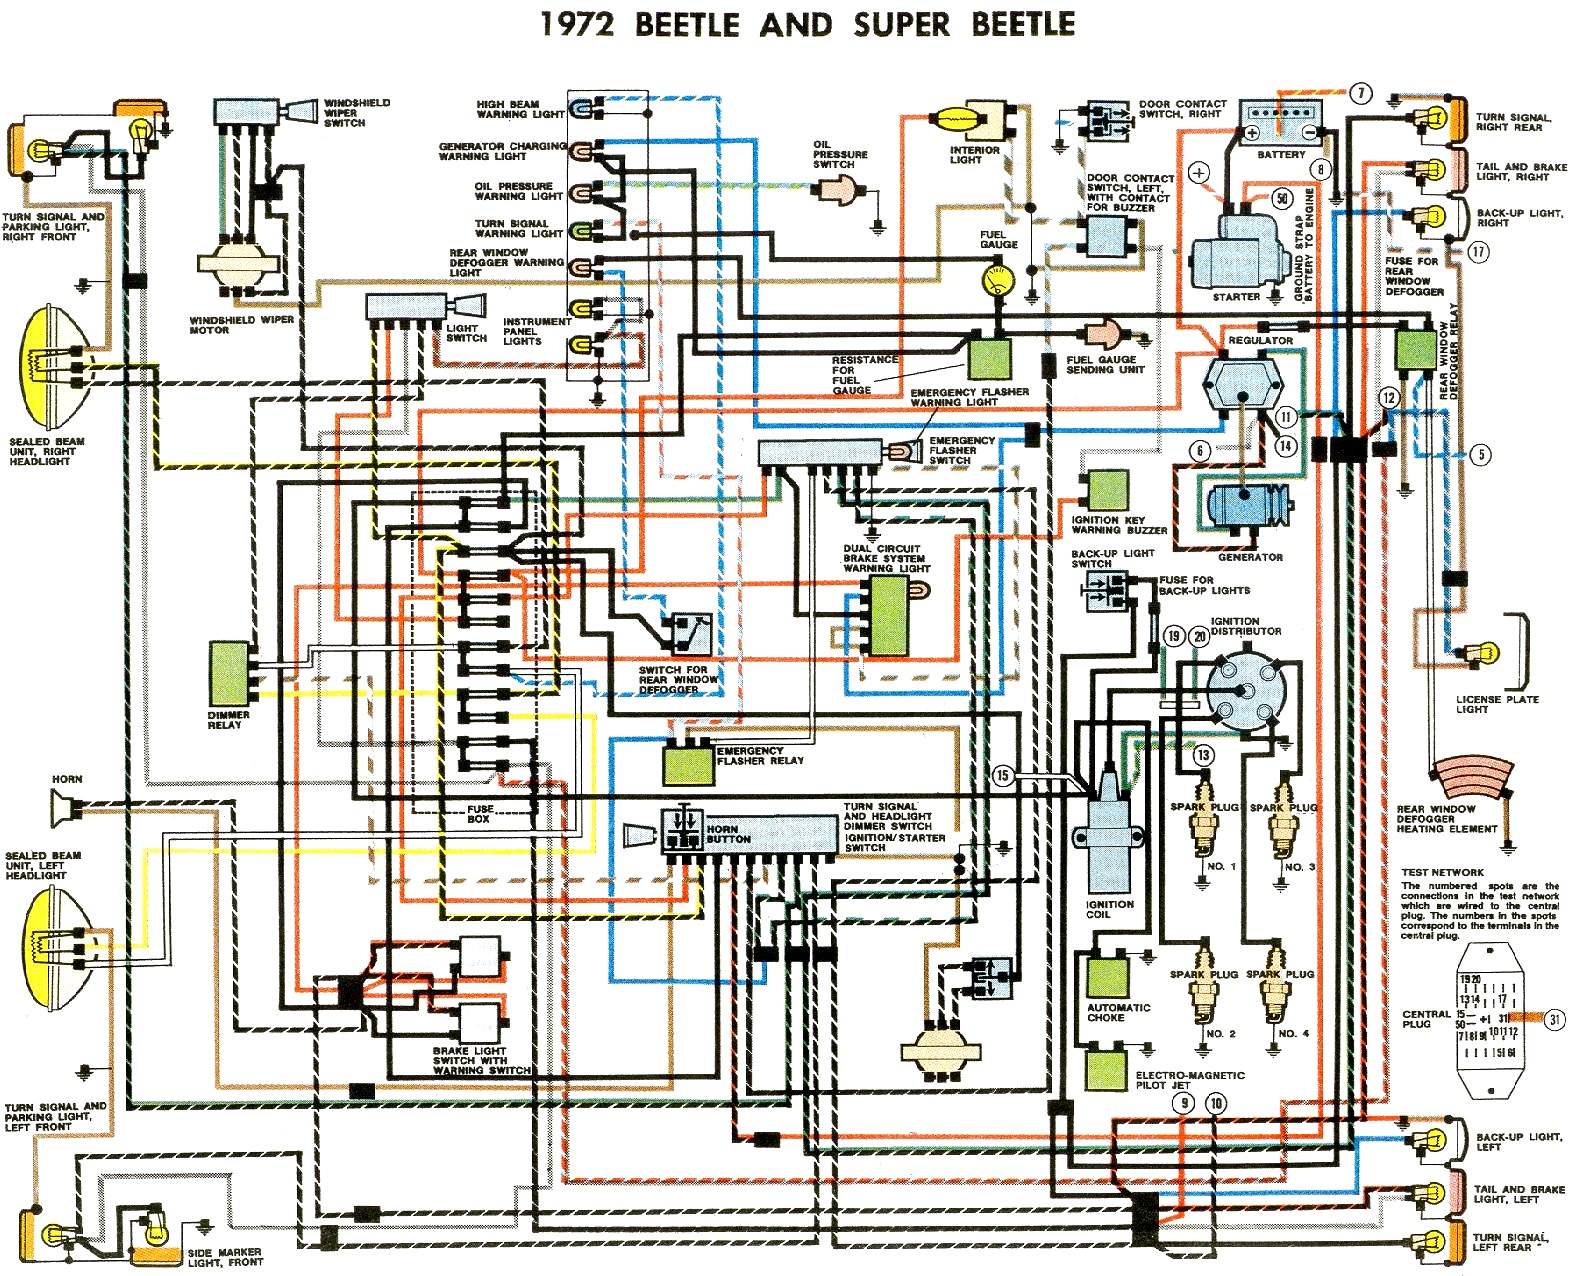 1972 Vw Super Beetle Wiring Diagram Will Be A Thing Ground 71 Mustang Thegoldenbug Com Rh 1971